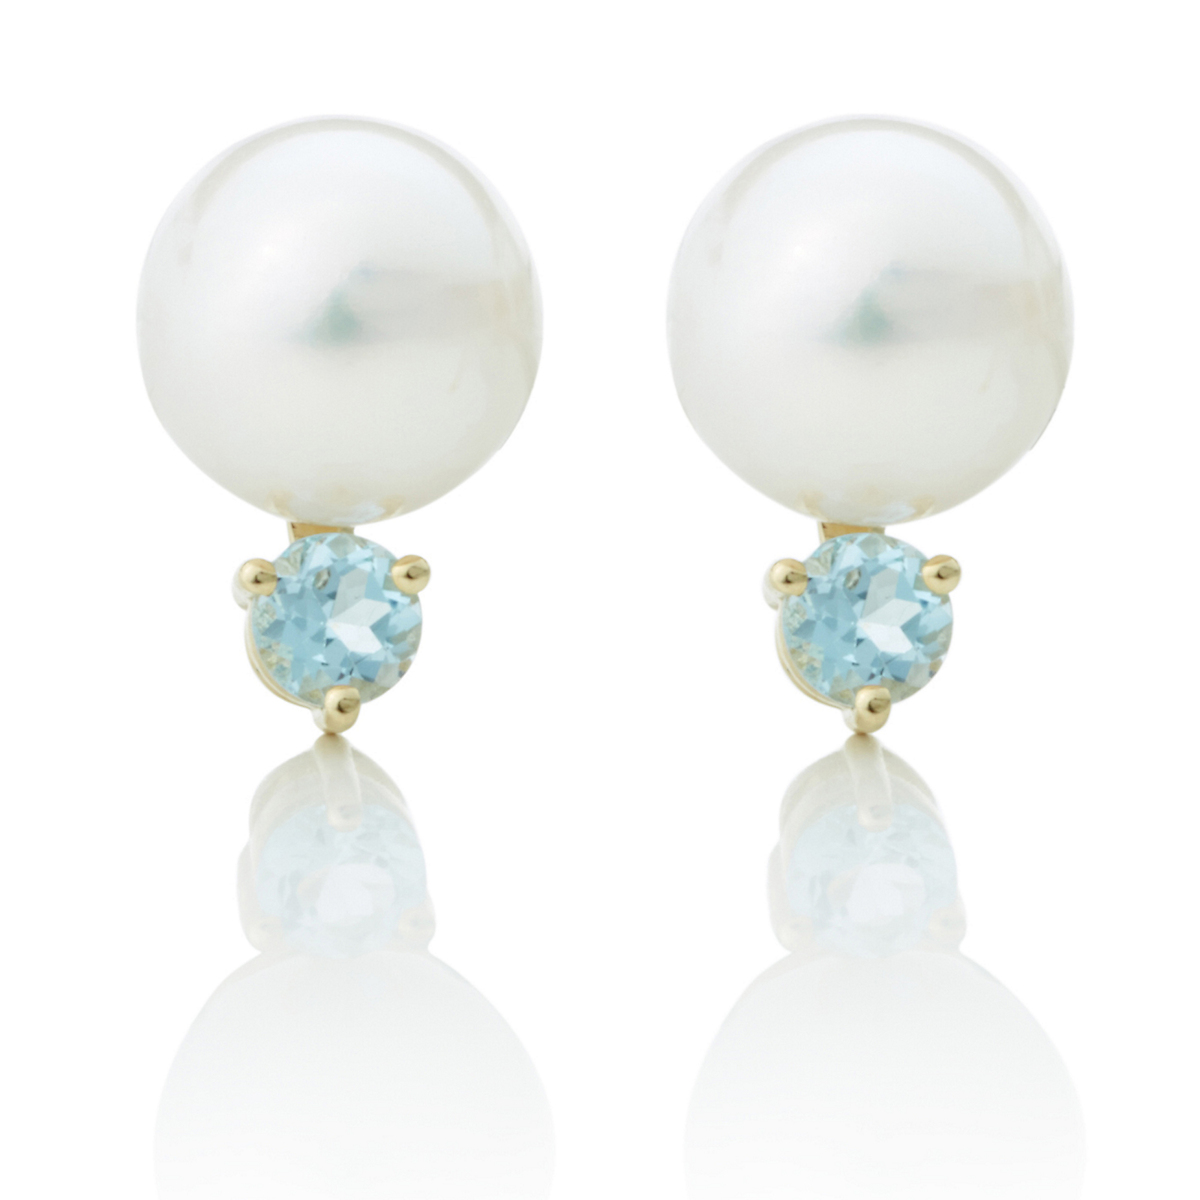 Gump's White Freshwater Pearl, Blue Topaz & Gold Earrings